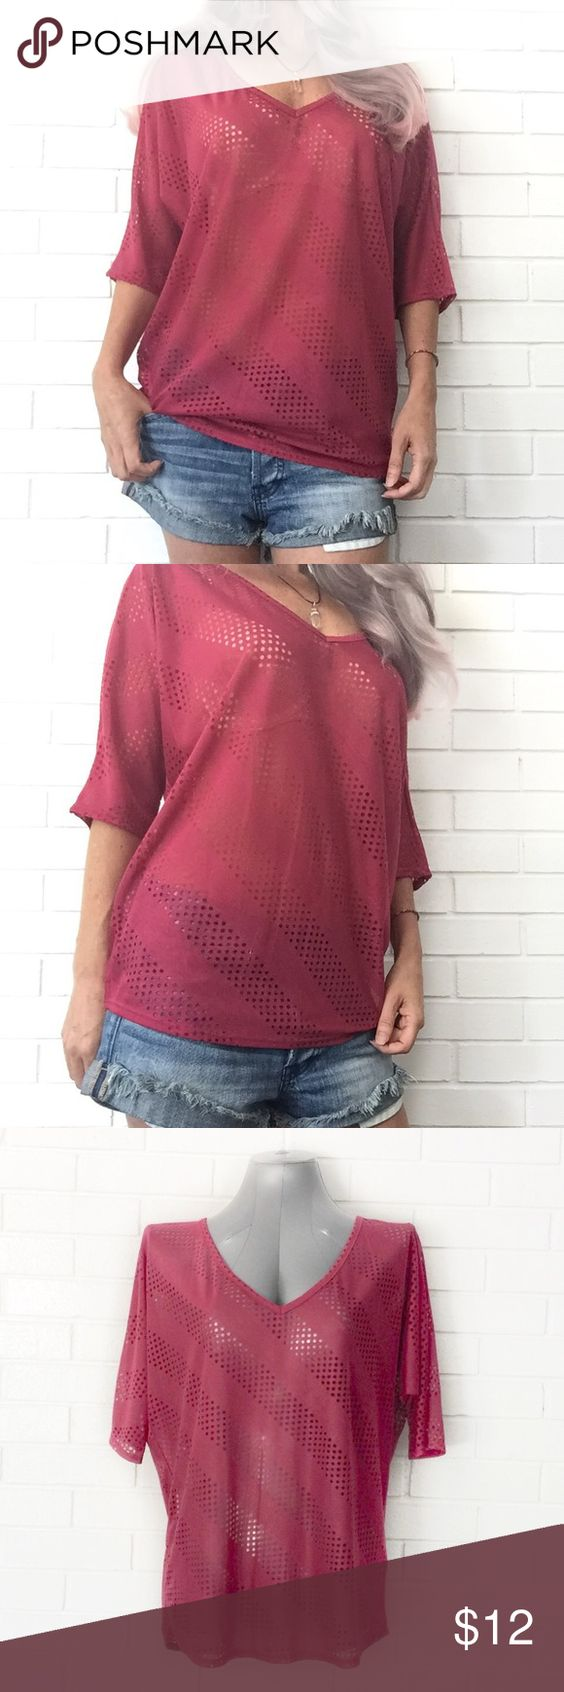 "🔴BOGO FREE🔴Maroon Semi Sheer Pattern Top ♦️Buy any item at list price to receive another item FREE. Please ask me to create your bundle (lesser value item will be free)♦️  •NWOT •V-neck  •Dolman sleeves •Keyhole peekaboo back •Semi sheer eyelet pattern  •Falls just below the waist •Comfortable loose fit  •Rayon/polyester •M   •Chest: 25"" (laying flat) •Length: 25""  •NO TRADE/HOLD  •YES BUNDLES   •PLEASE ASK QUESTIONS & READ DESCRIPTIONS. Measurements and sizing recommendations are for…"